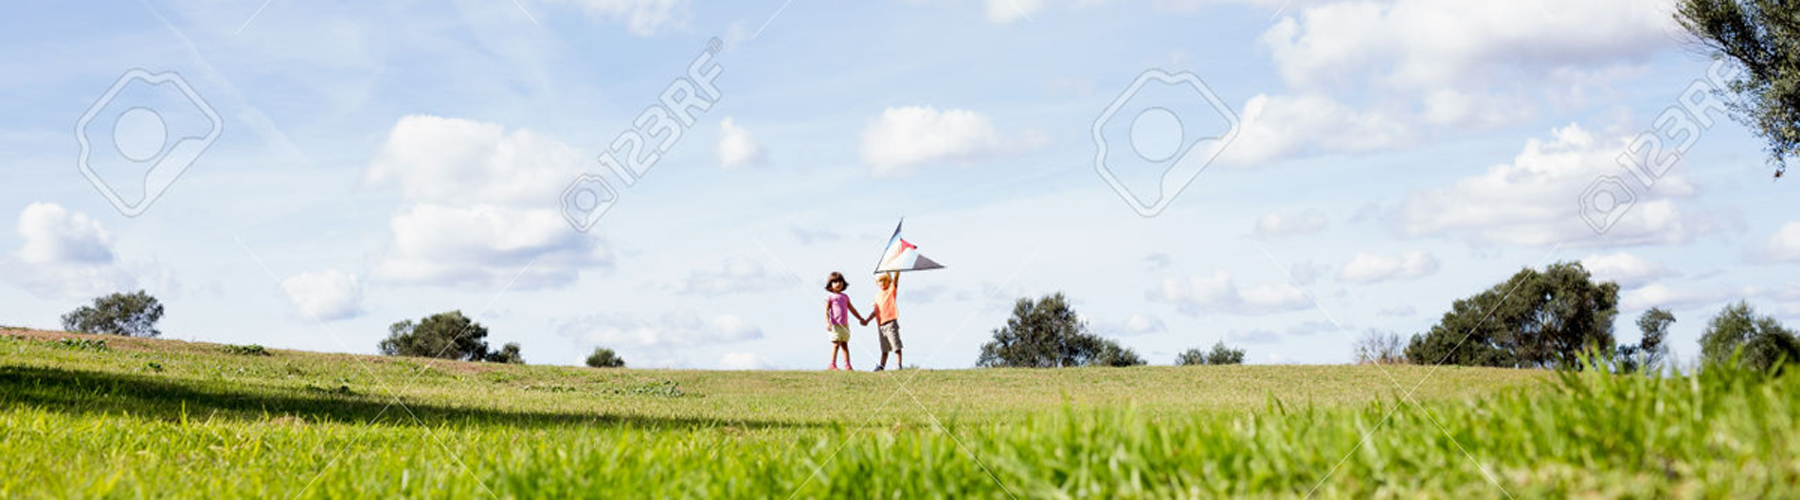 Brother and sister playing with a kite in the distance in a park on a sunny day